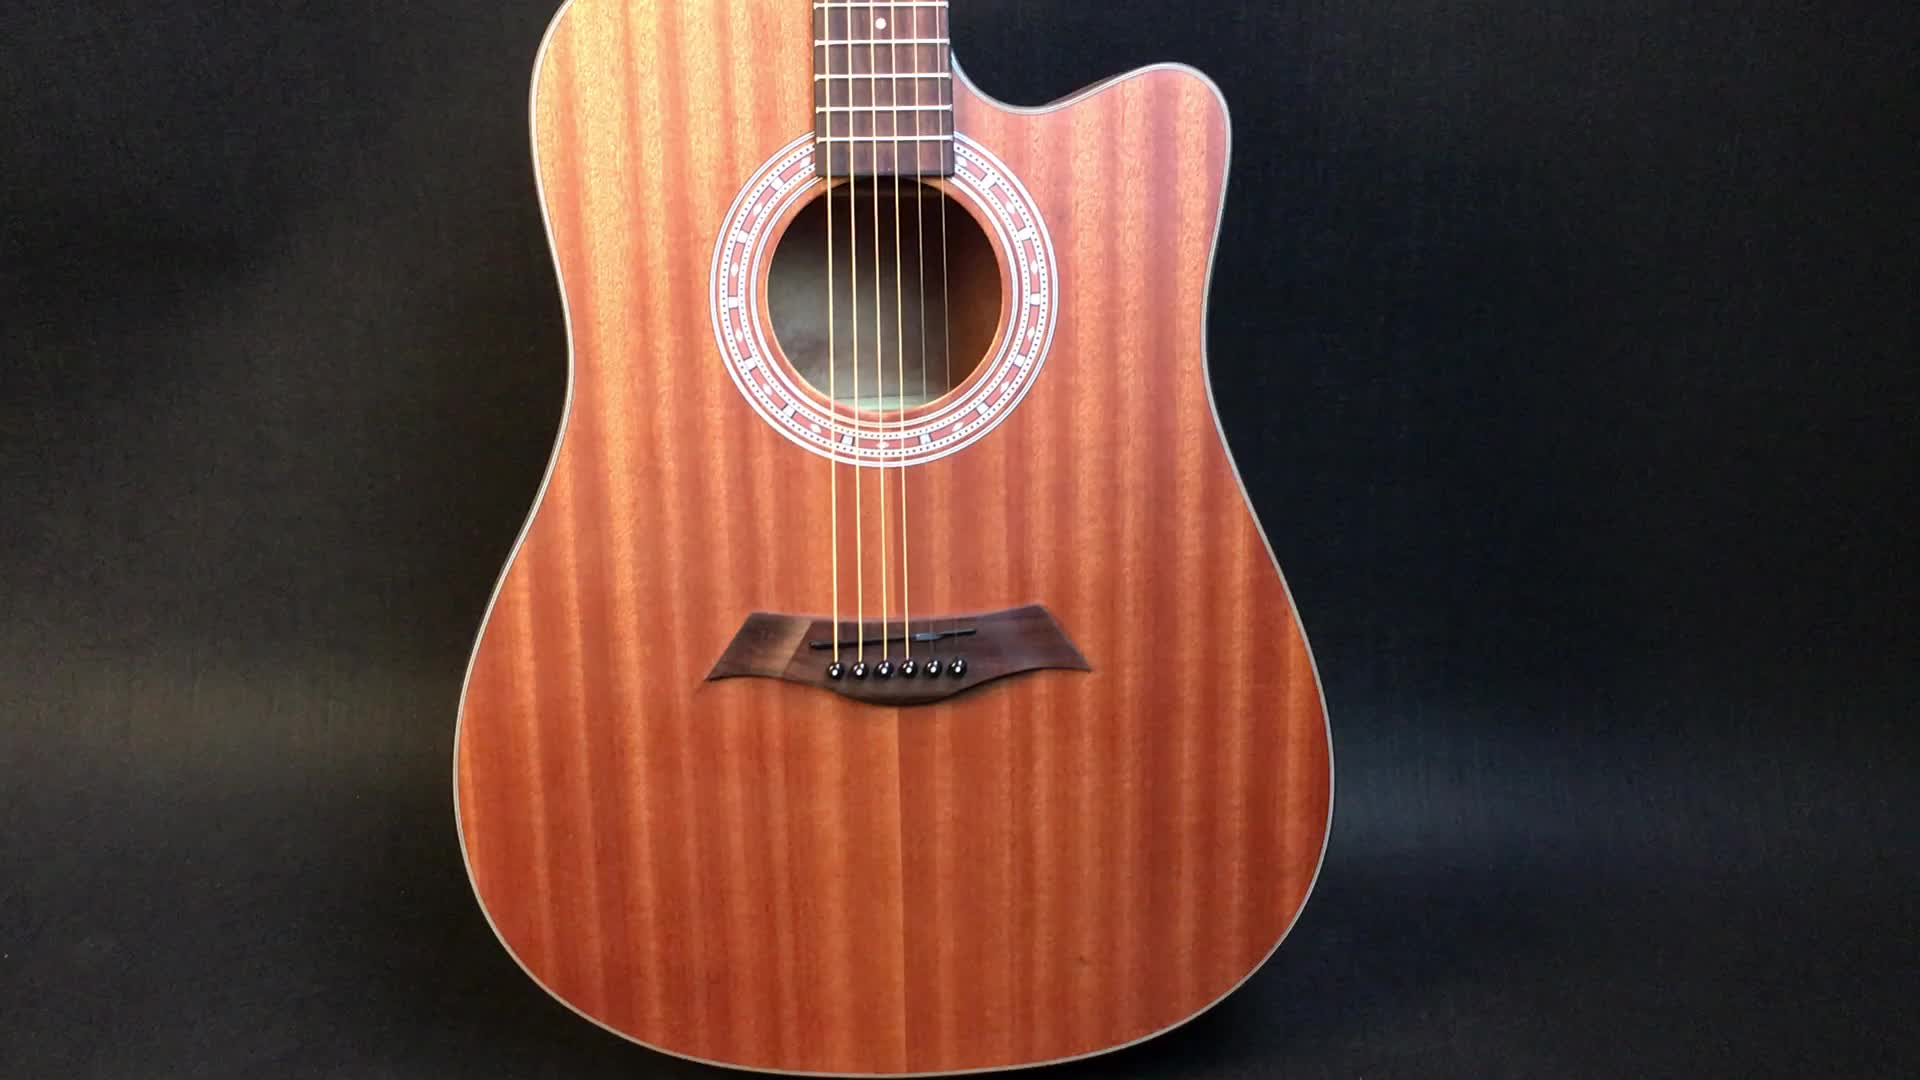 plywood acoustic guitars china guizhou factory directly exporting stp 001 buy guitar wholesale. Black Bedroom Furniture Sets. Home Design Ideas